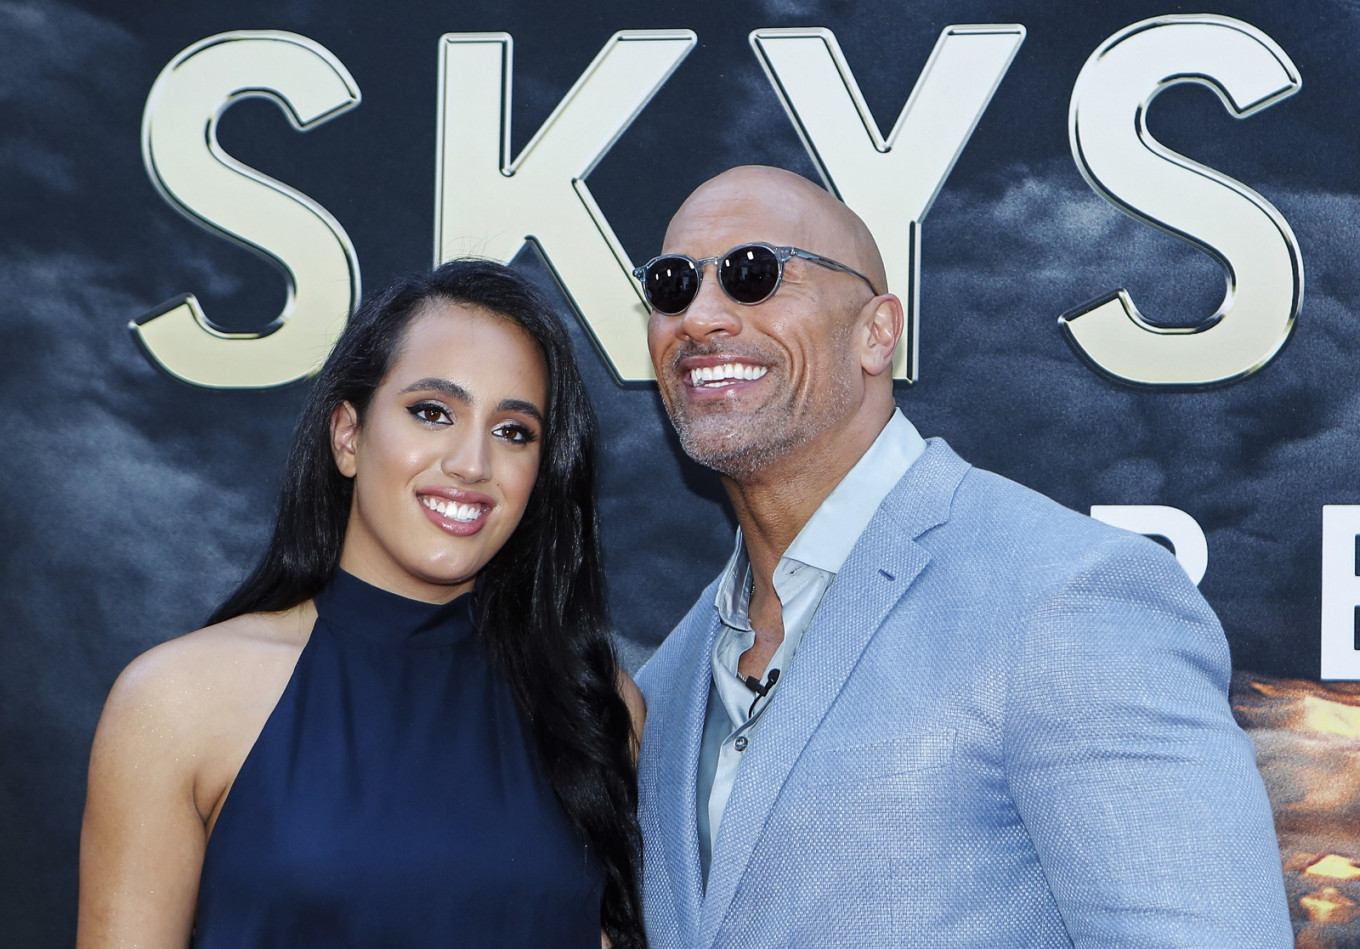 Dwayne 'The Rock' Johnson's daughter signs up with WWE